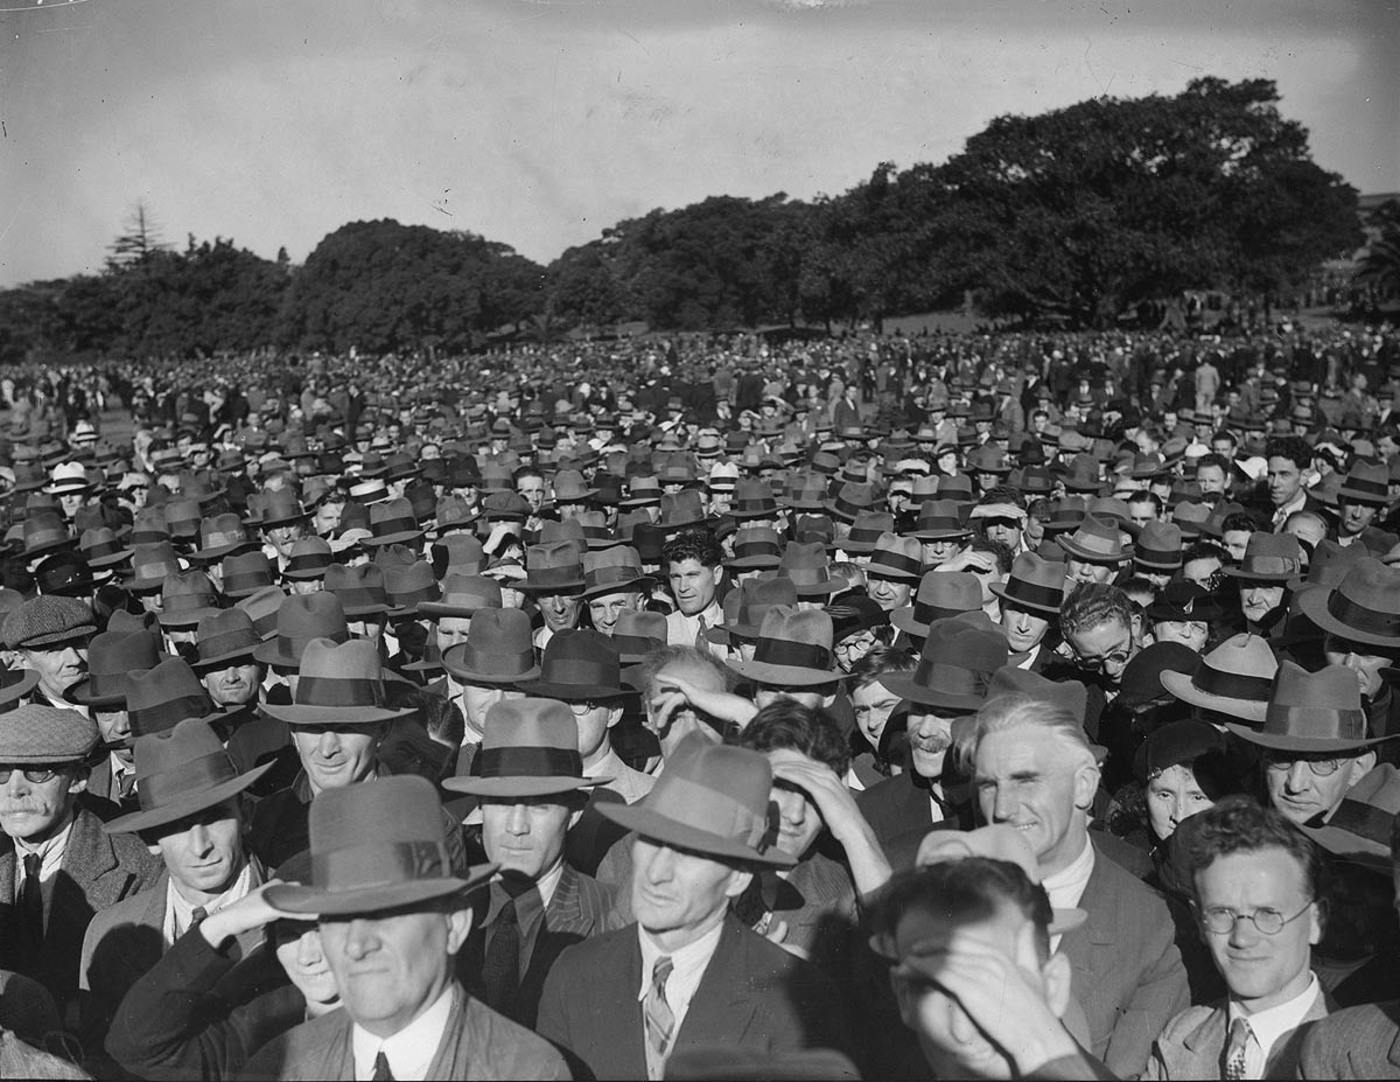 Crowd in the Domain listening to Communist Party speaker c1934 by Sam Hood